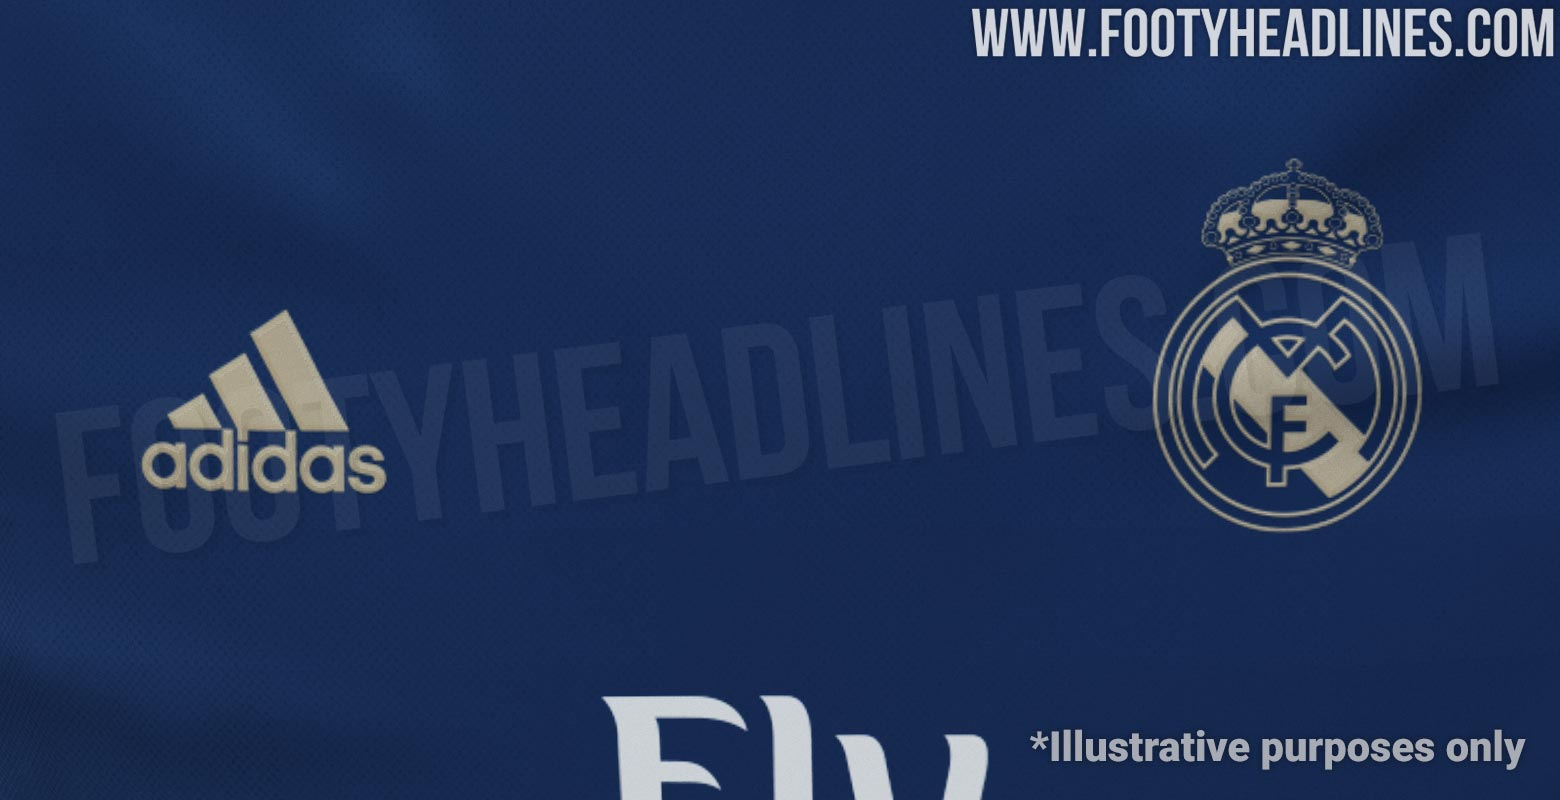 Real Madrid Away Kit Real Madrid 19-20 Away Kit To Be Navy & Gold - Footy Headlines